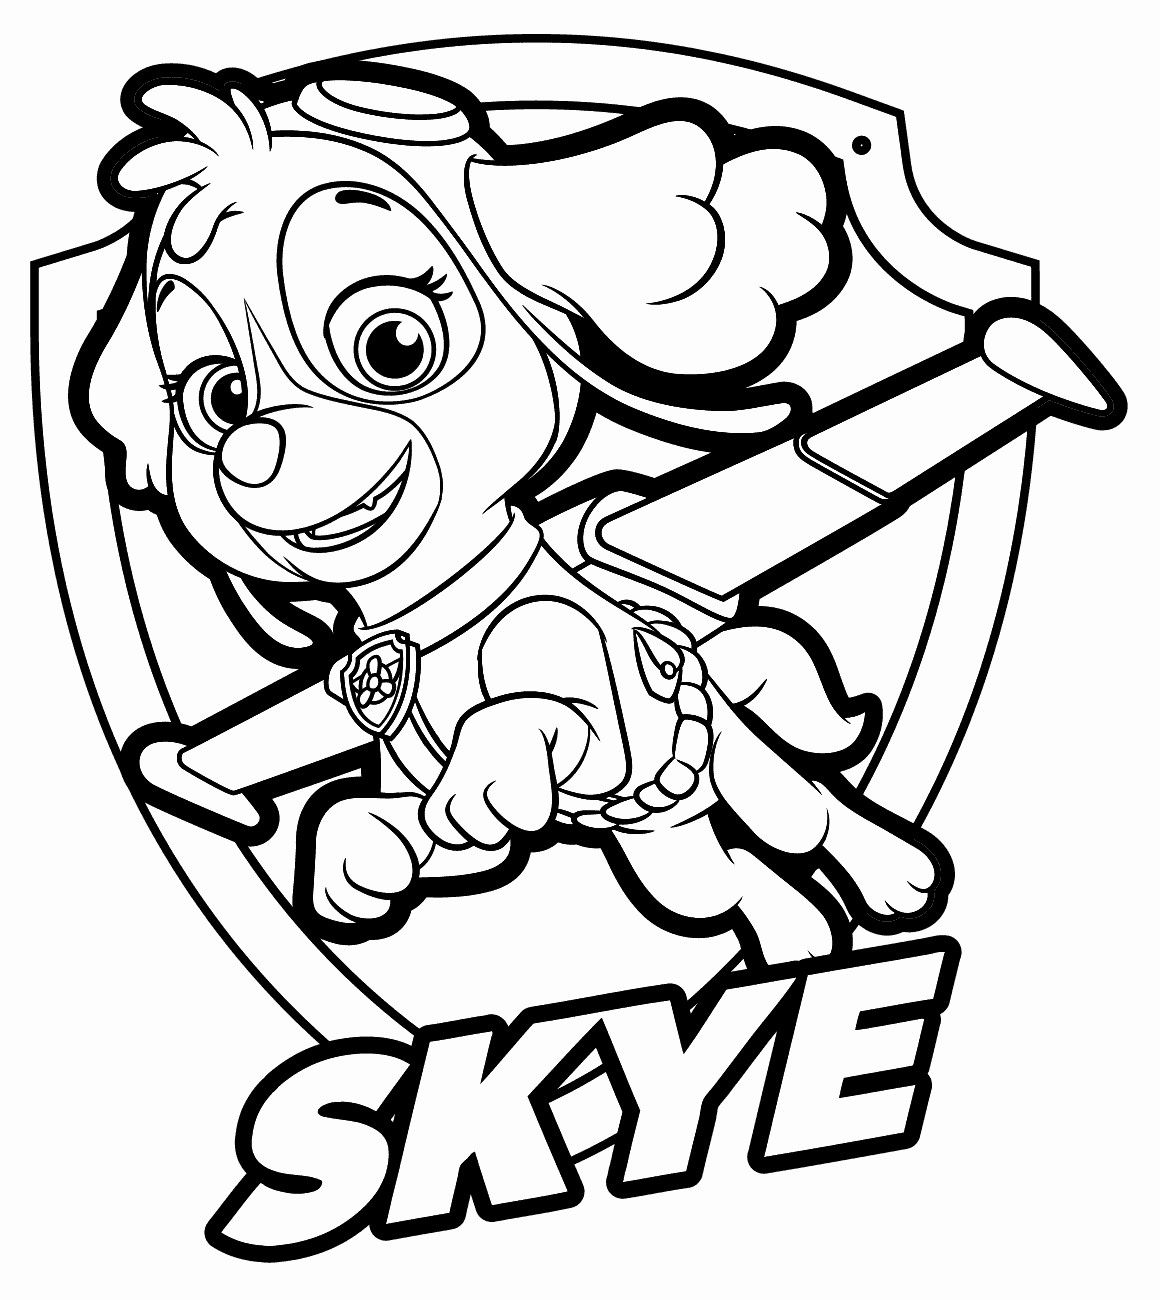 Paw Patrol Coloring Pages Paw Patrol Coloring Pages Sky At Getcolorings Free Printable Albanysinsanity Com Paw Patrol Coloring Pages Paw Patrol Coloring Skye Paw Patrol